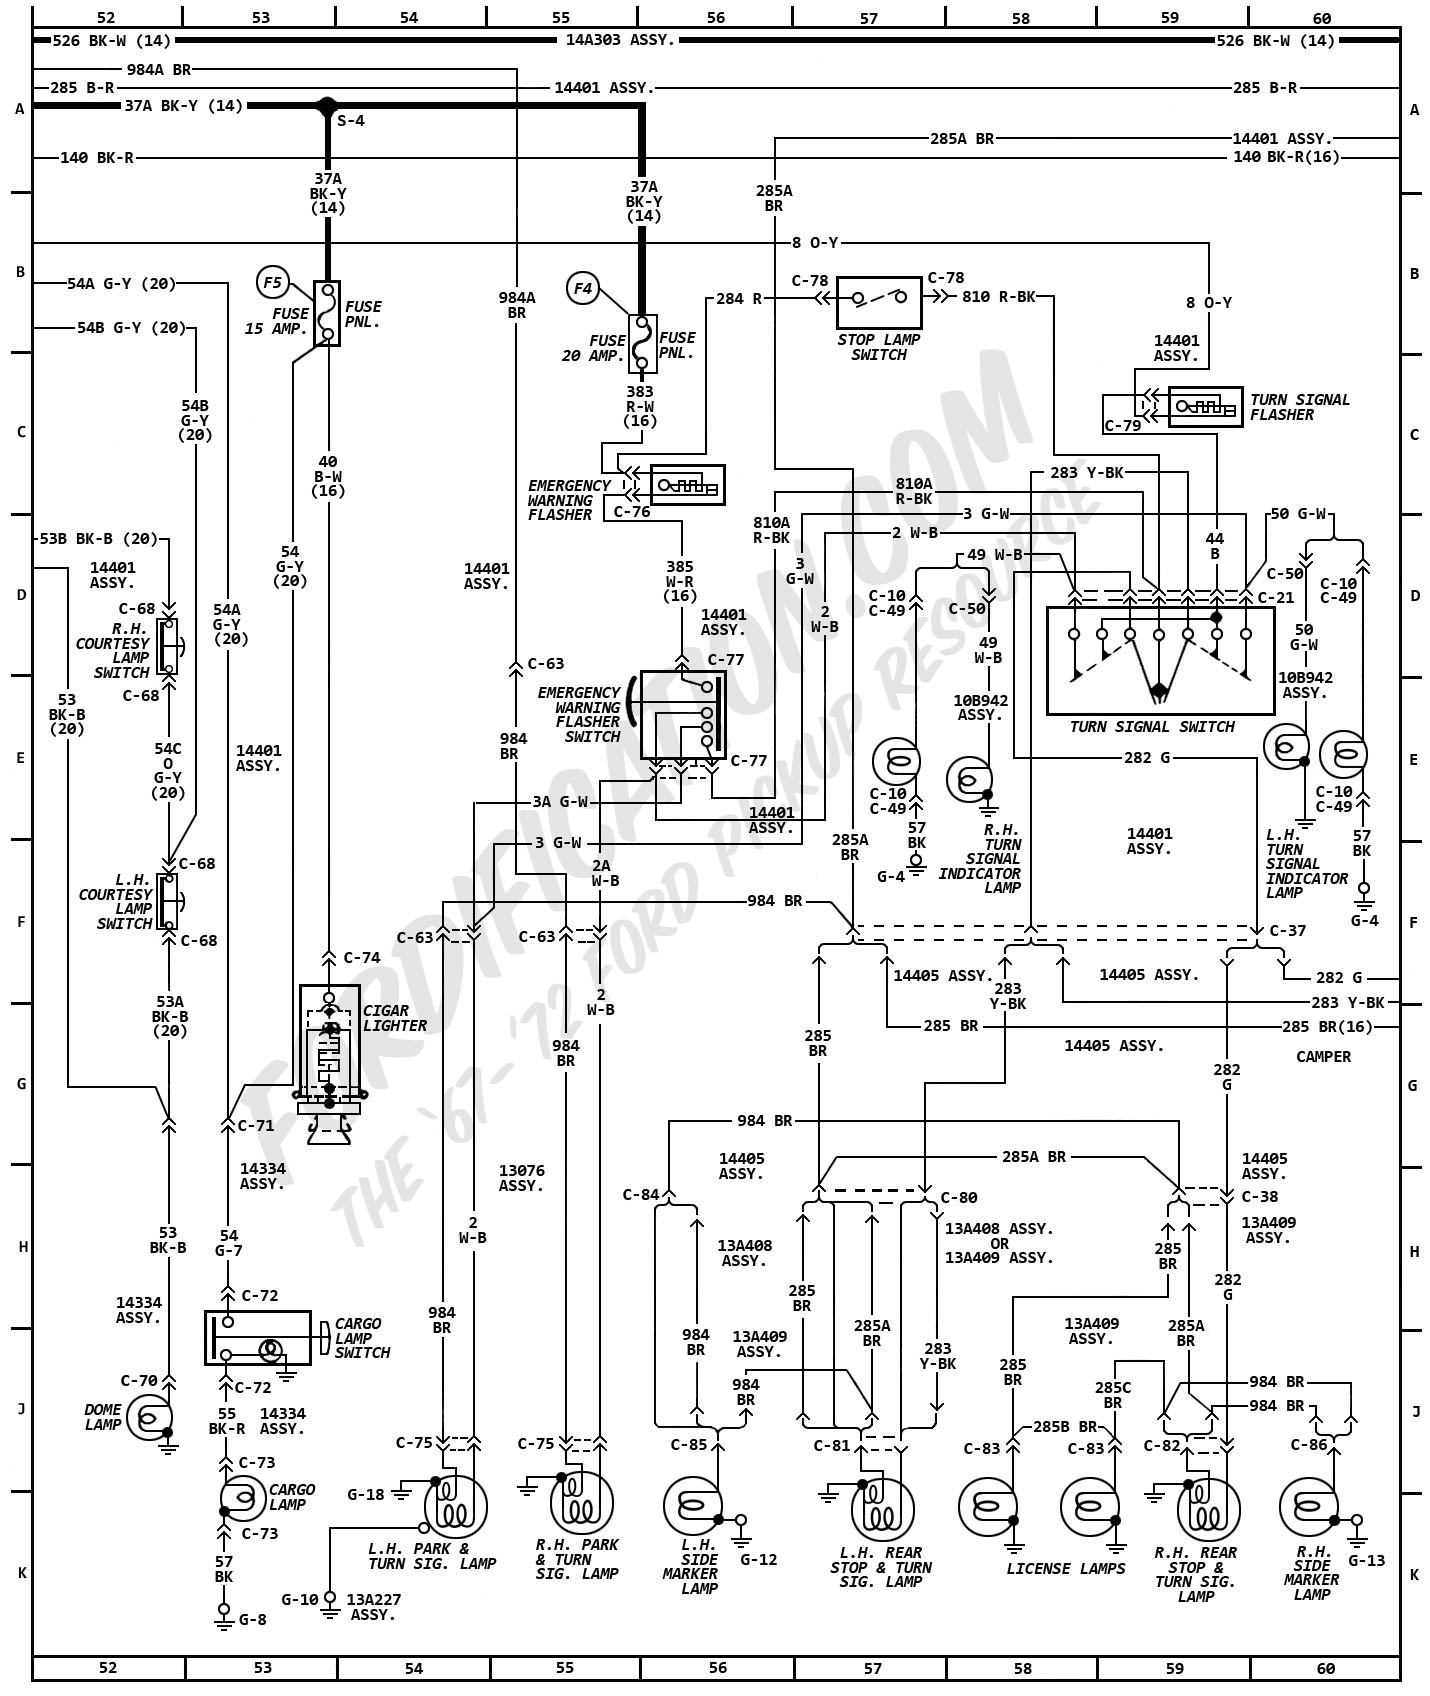 1972MasterWiring_06 1972 ford truck wiring diagrams fordification com F100 Wiring Diagram at mr168.co